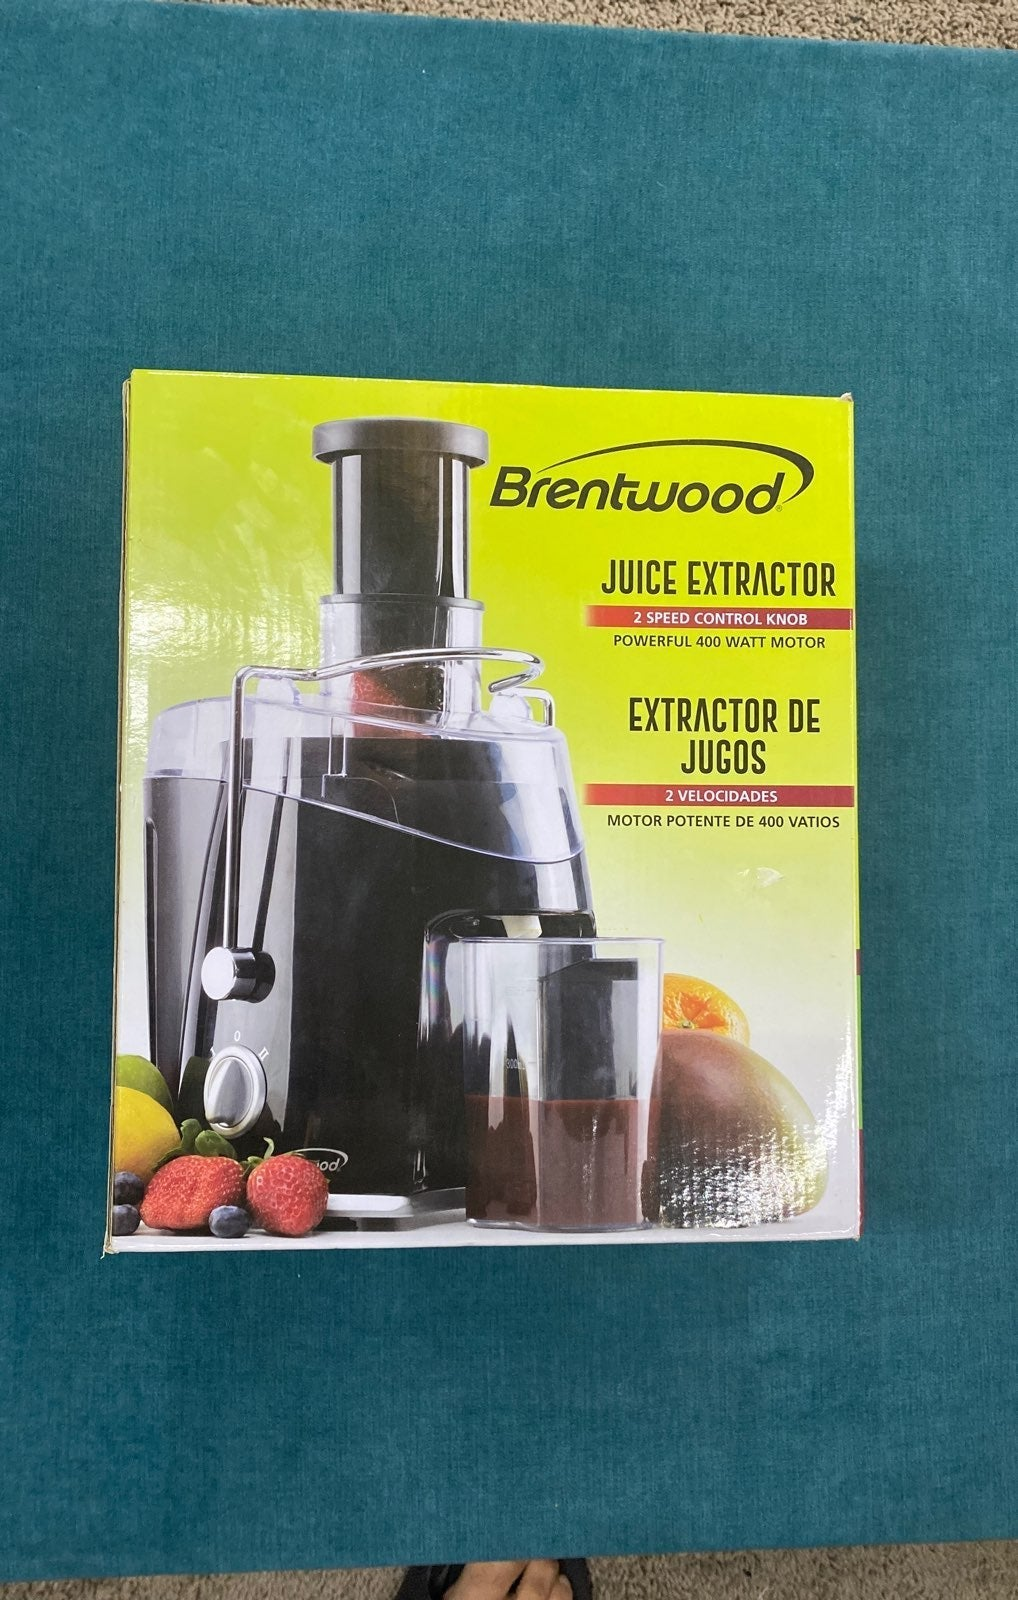 Brentwood Juice Extractor